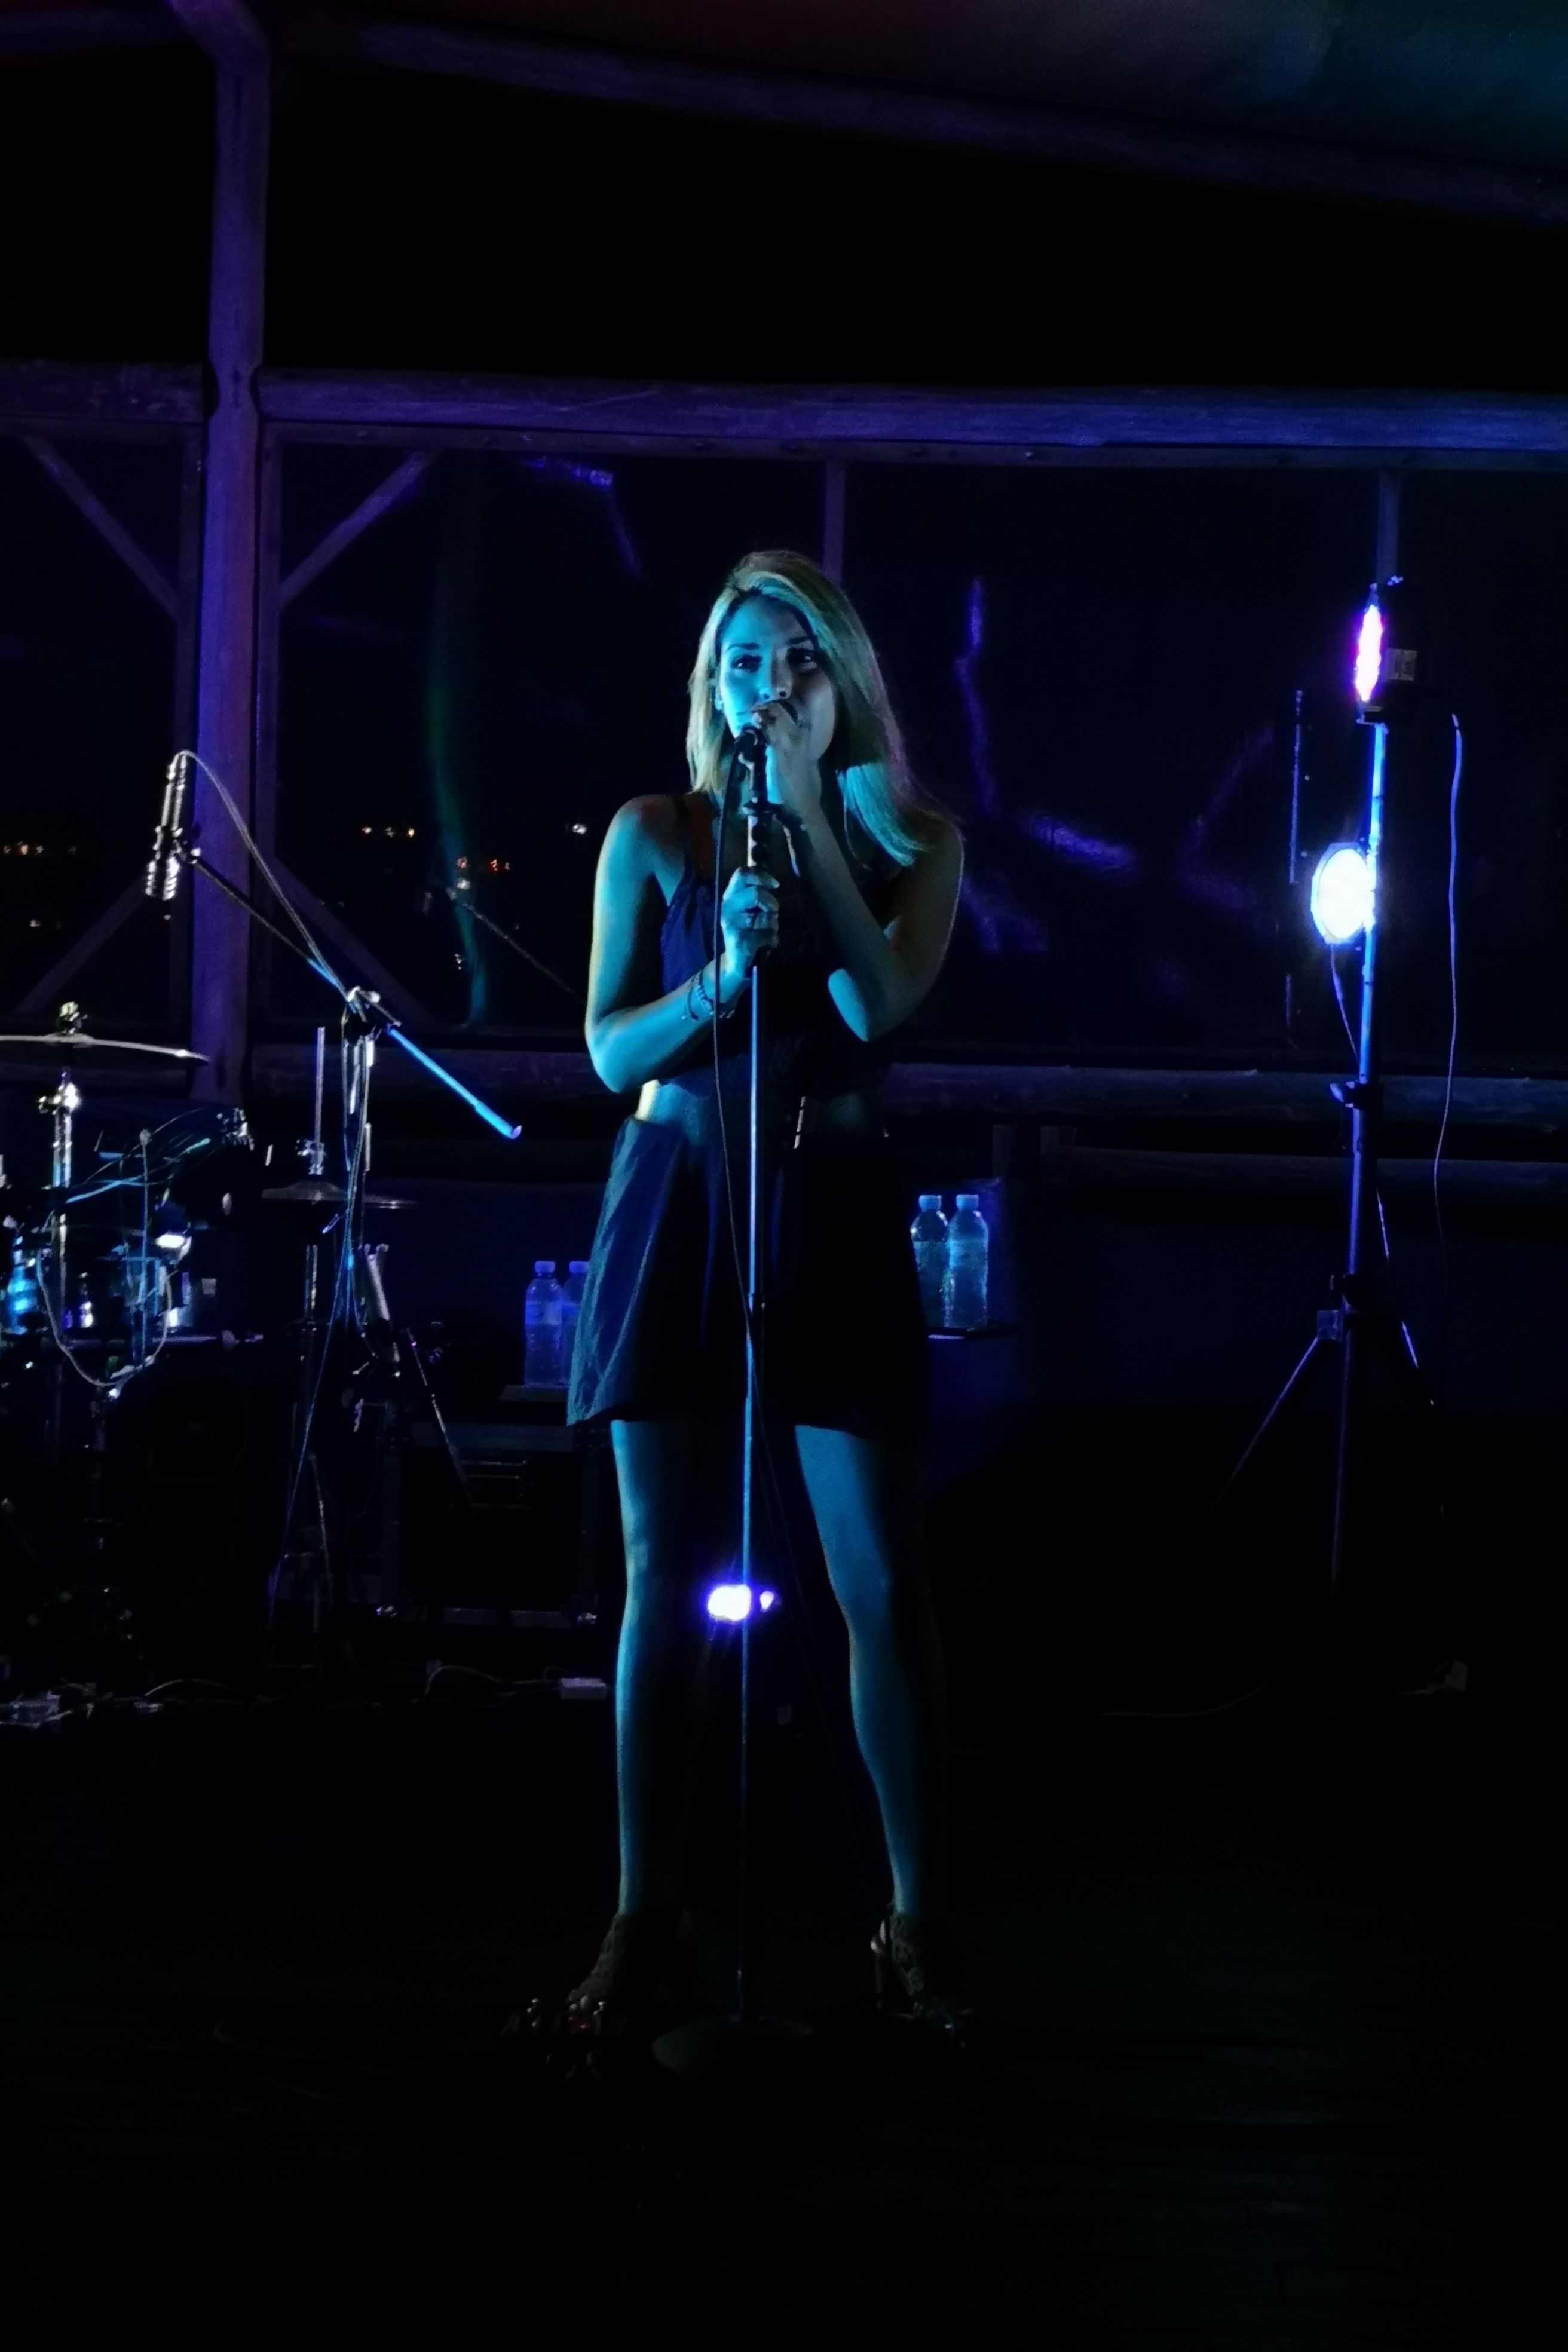 zazz, zaz, zazz music, country music, country girl, country tour, south african singer, artist, new artist, country singer,  live performance, female artist, south africa, music, south african band,  top music, top artist, mozambique, ponto do ouro